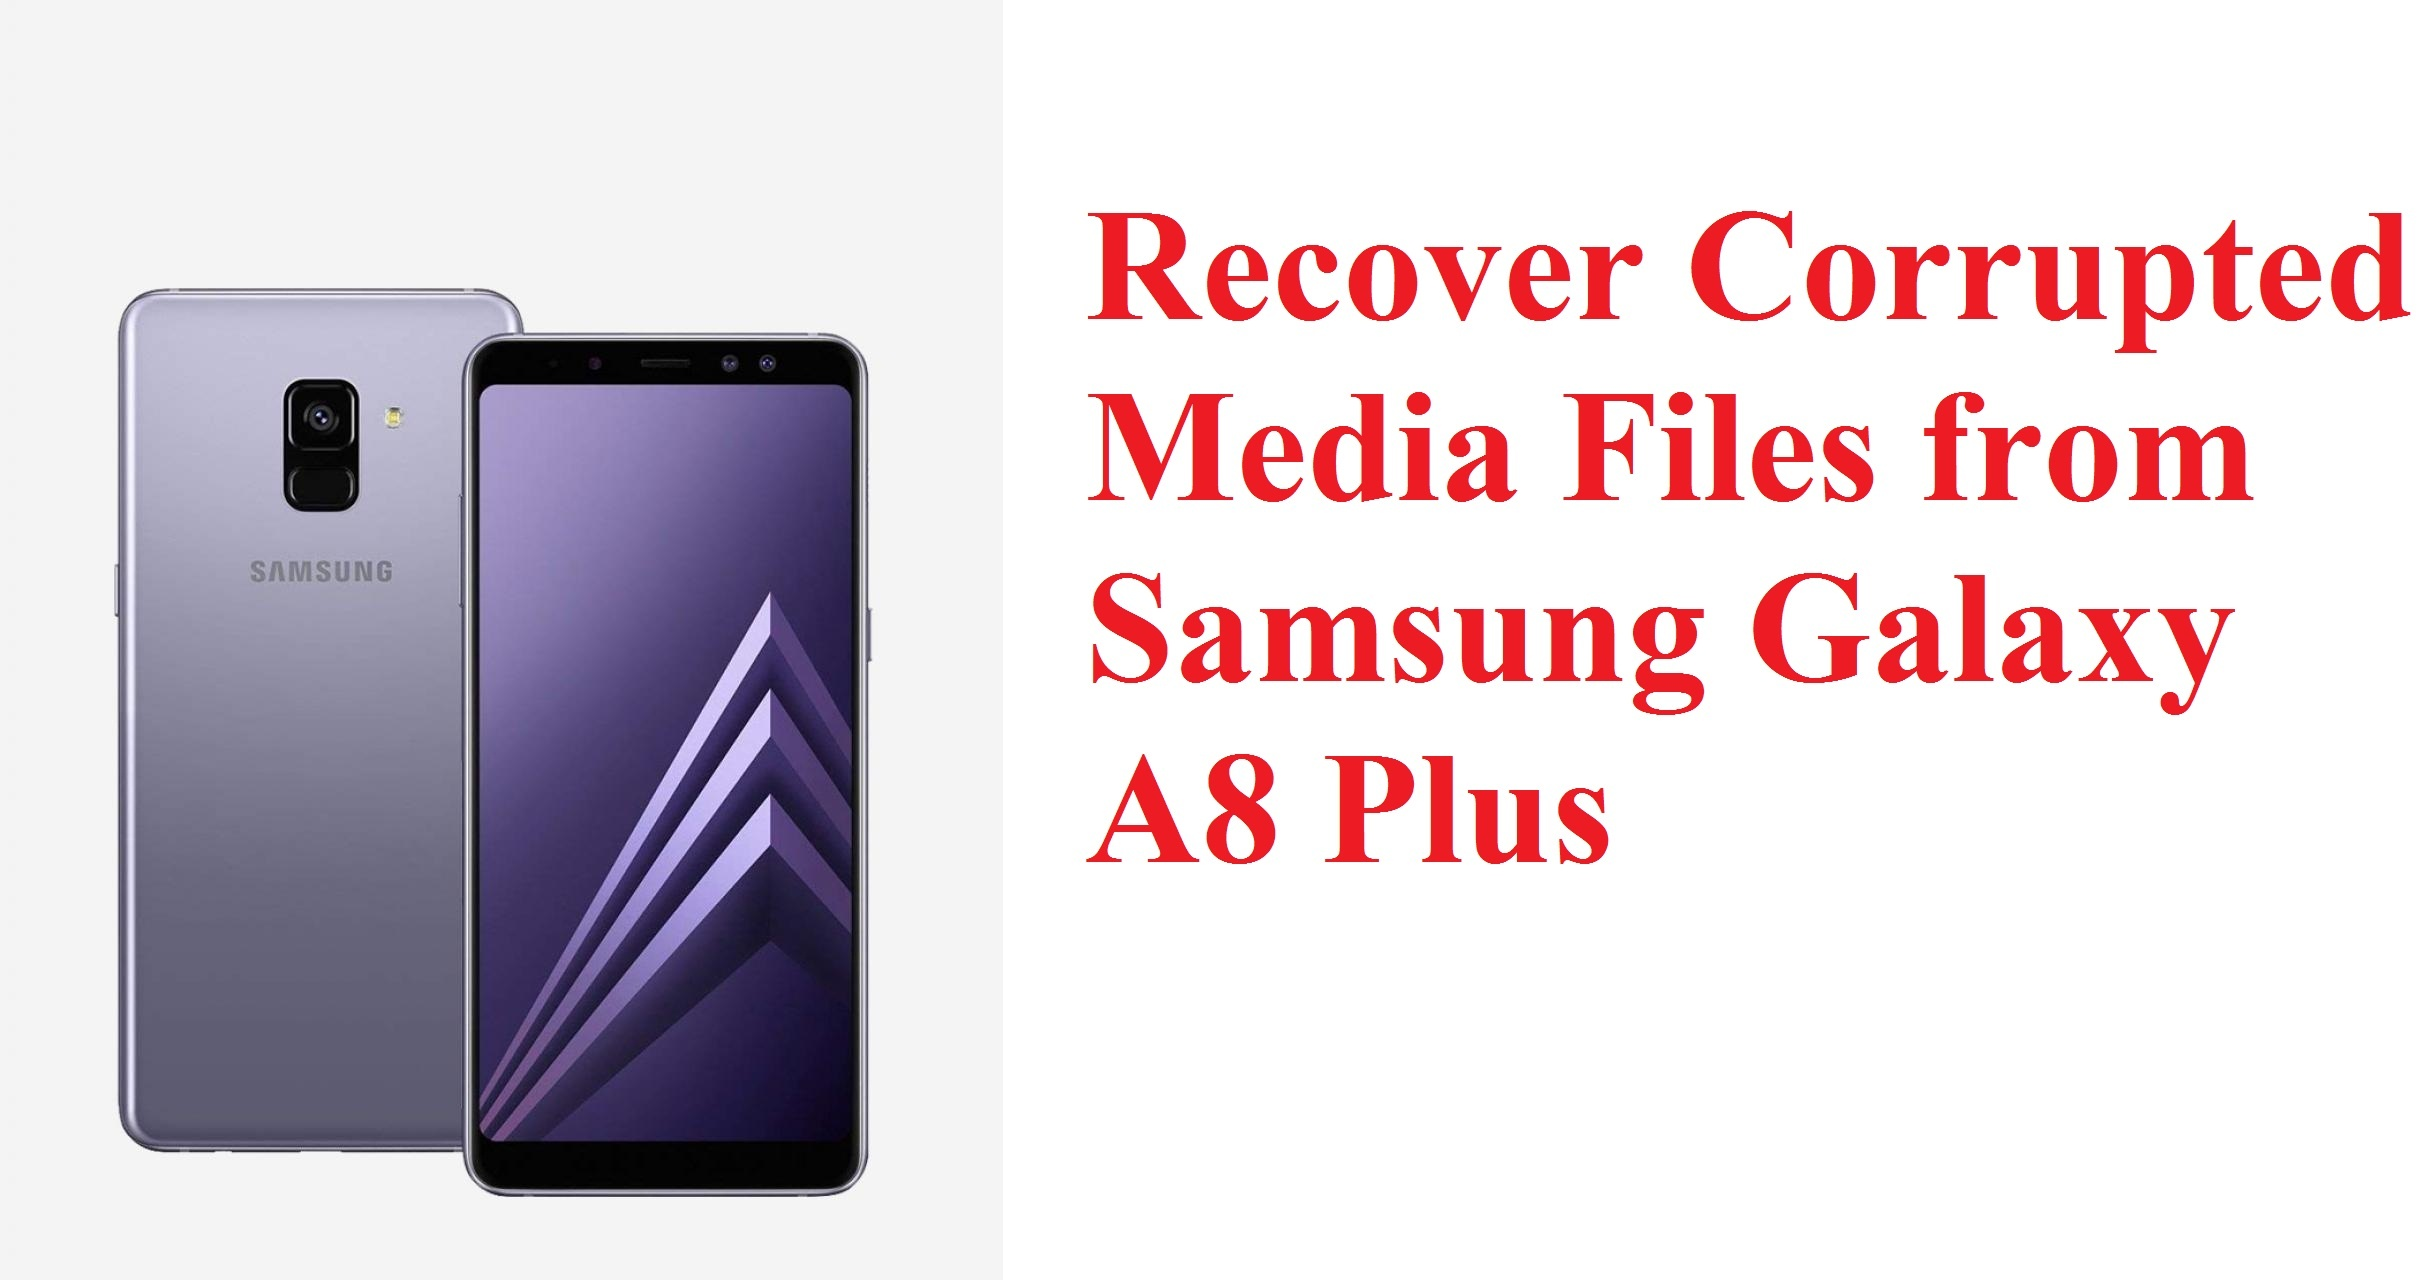 Method to recover corrupted media files from Samsung Galaxy A8 Plus